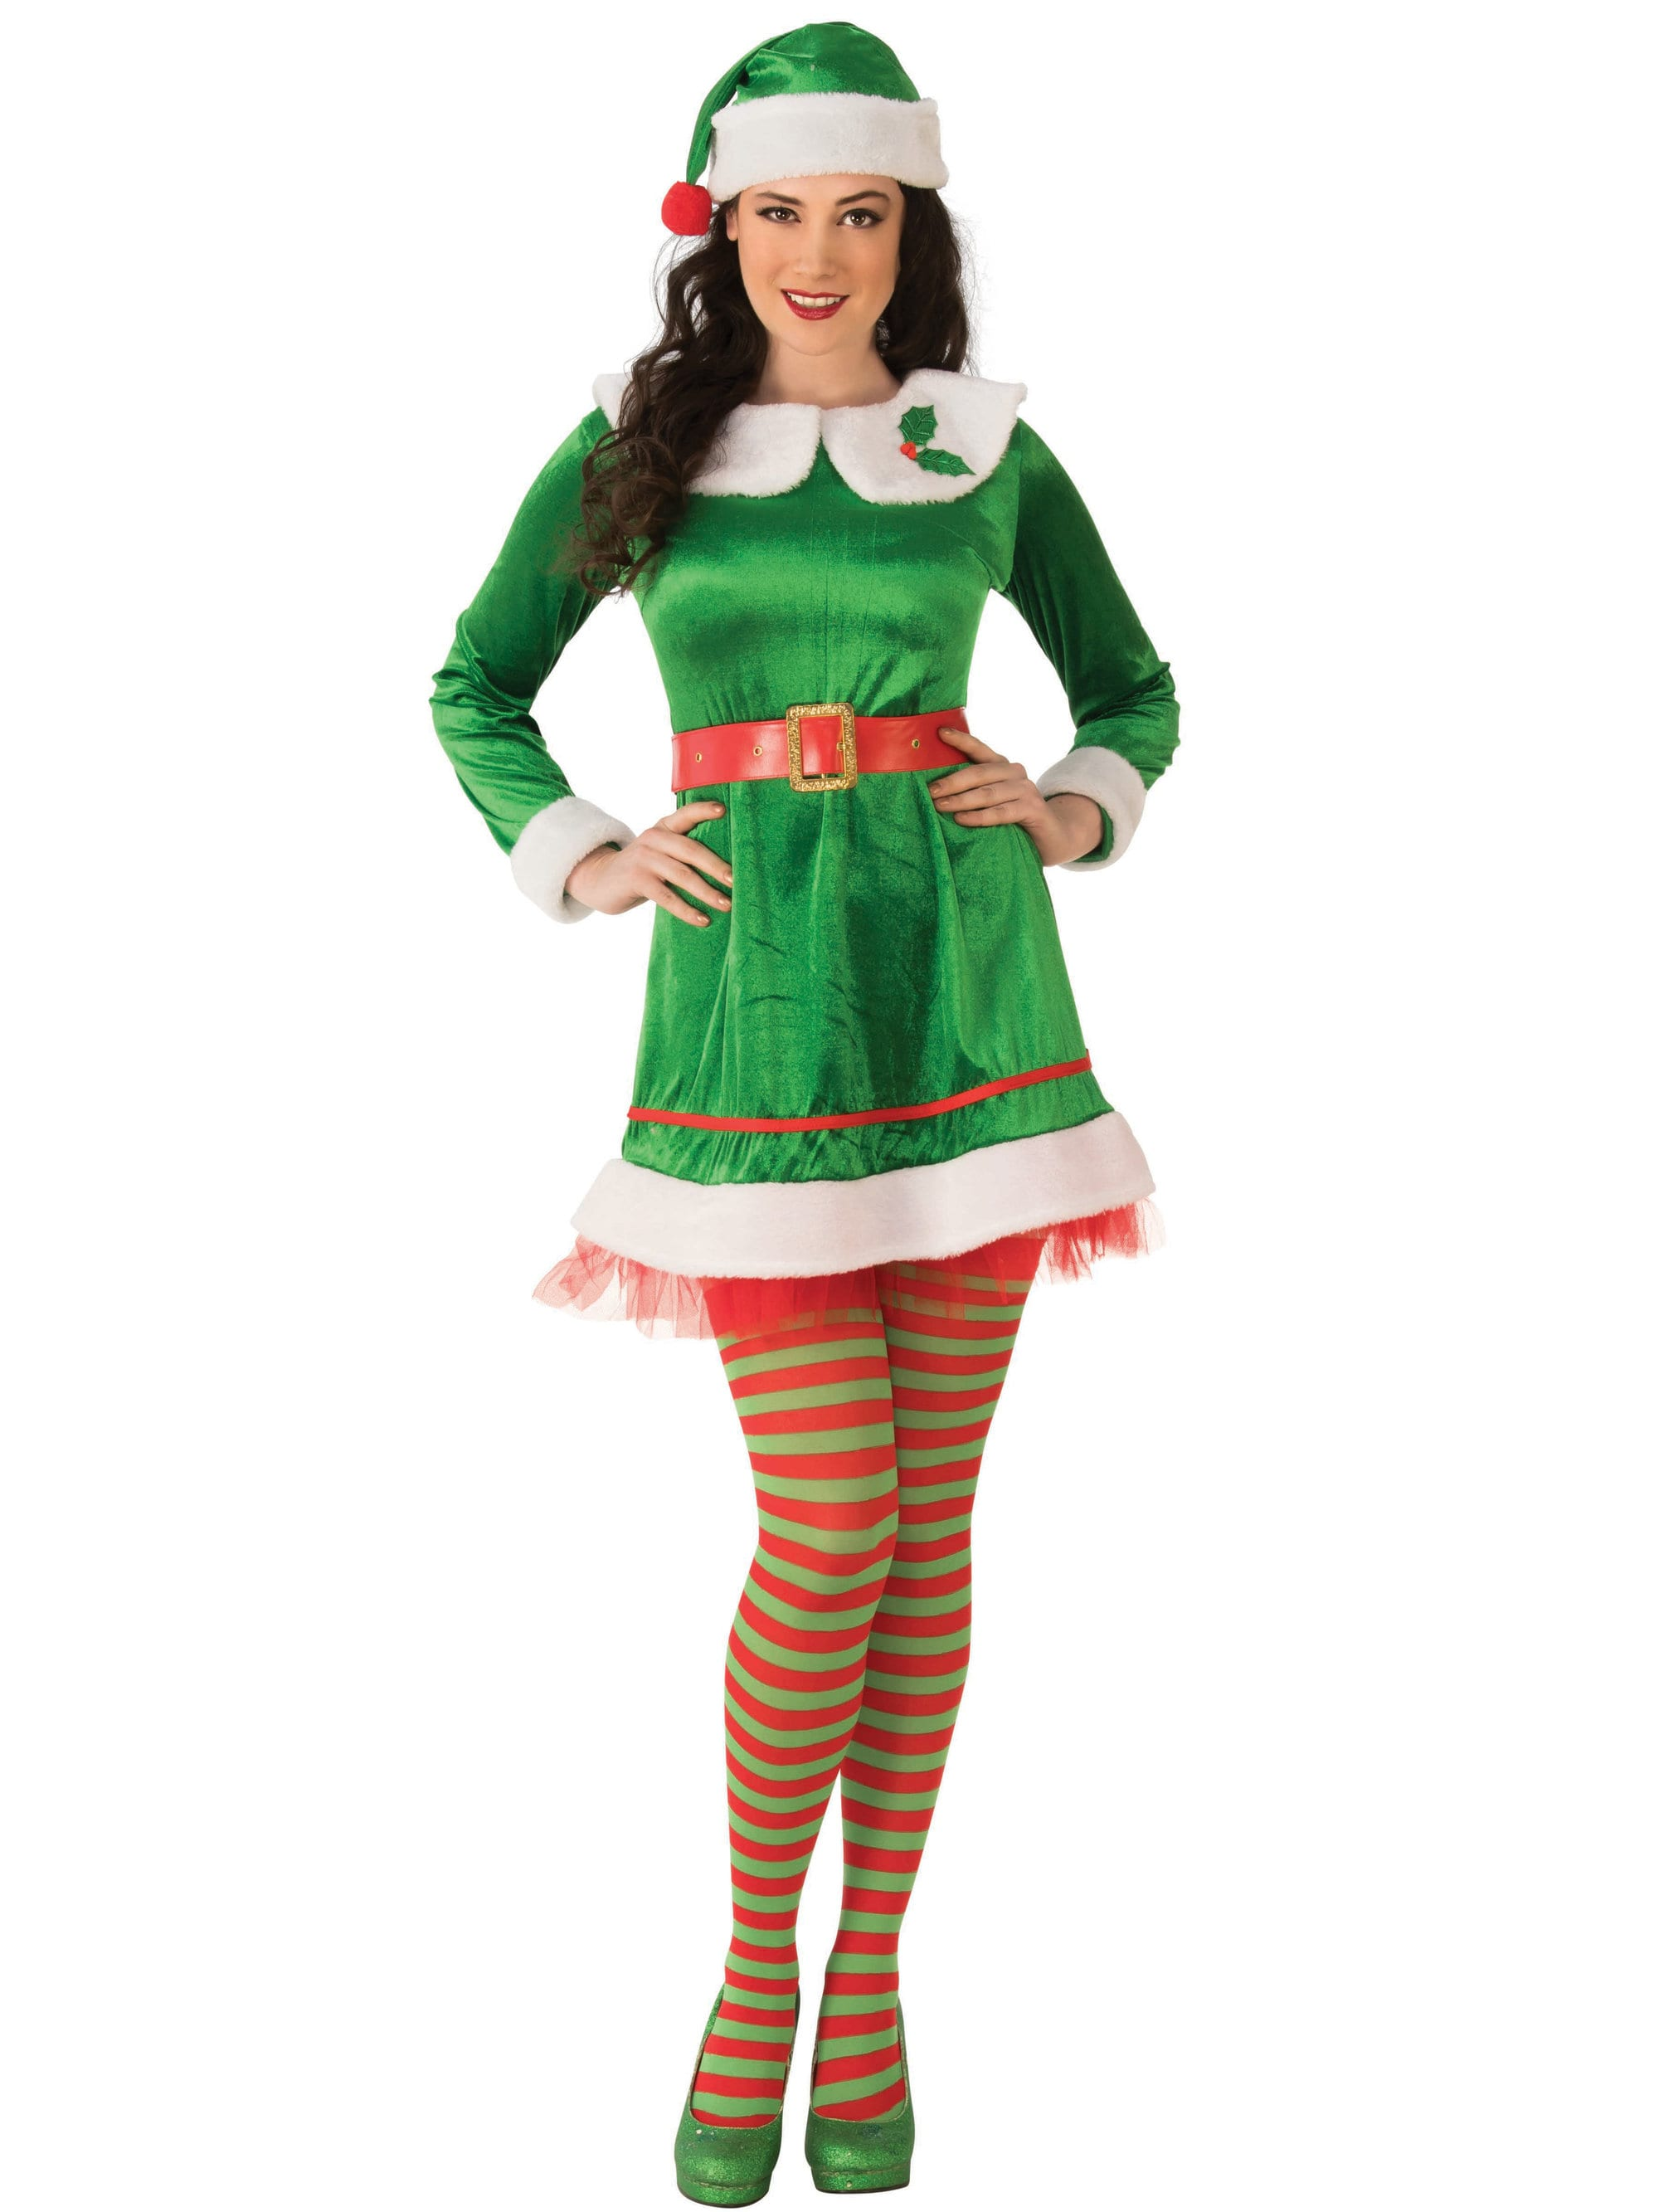 New Arrival  sc 1 st  Wholesale Halloween Costumes & Womens Elf Dress - Womens Costumes for 2018 | Wholesale Halloween ...